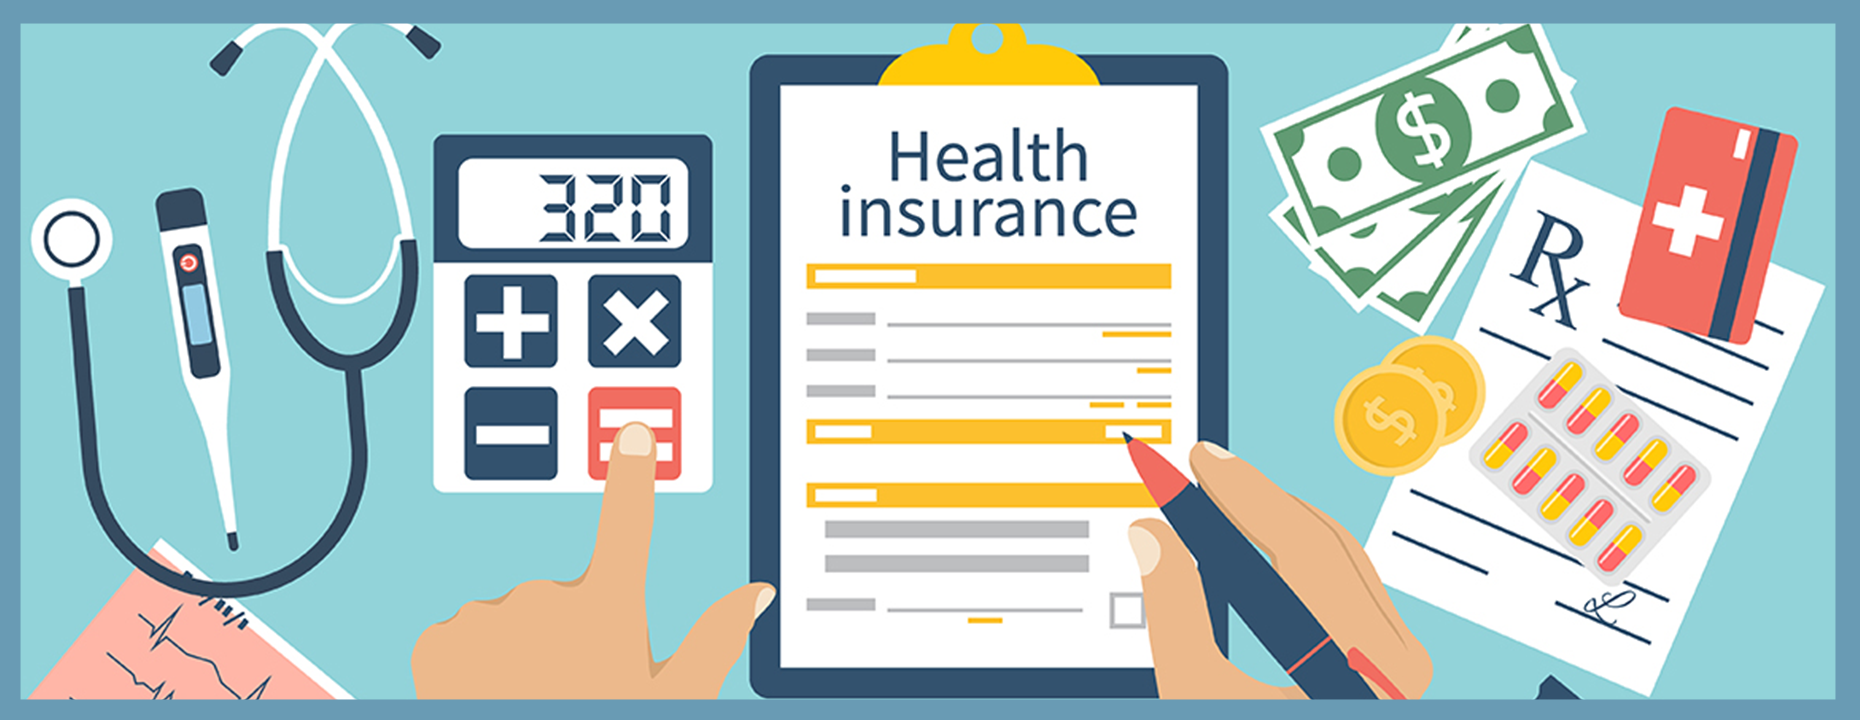 Insurance Open Enrollment period starts on October 15, 2020